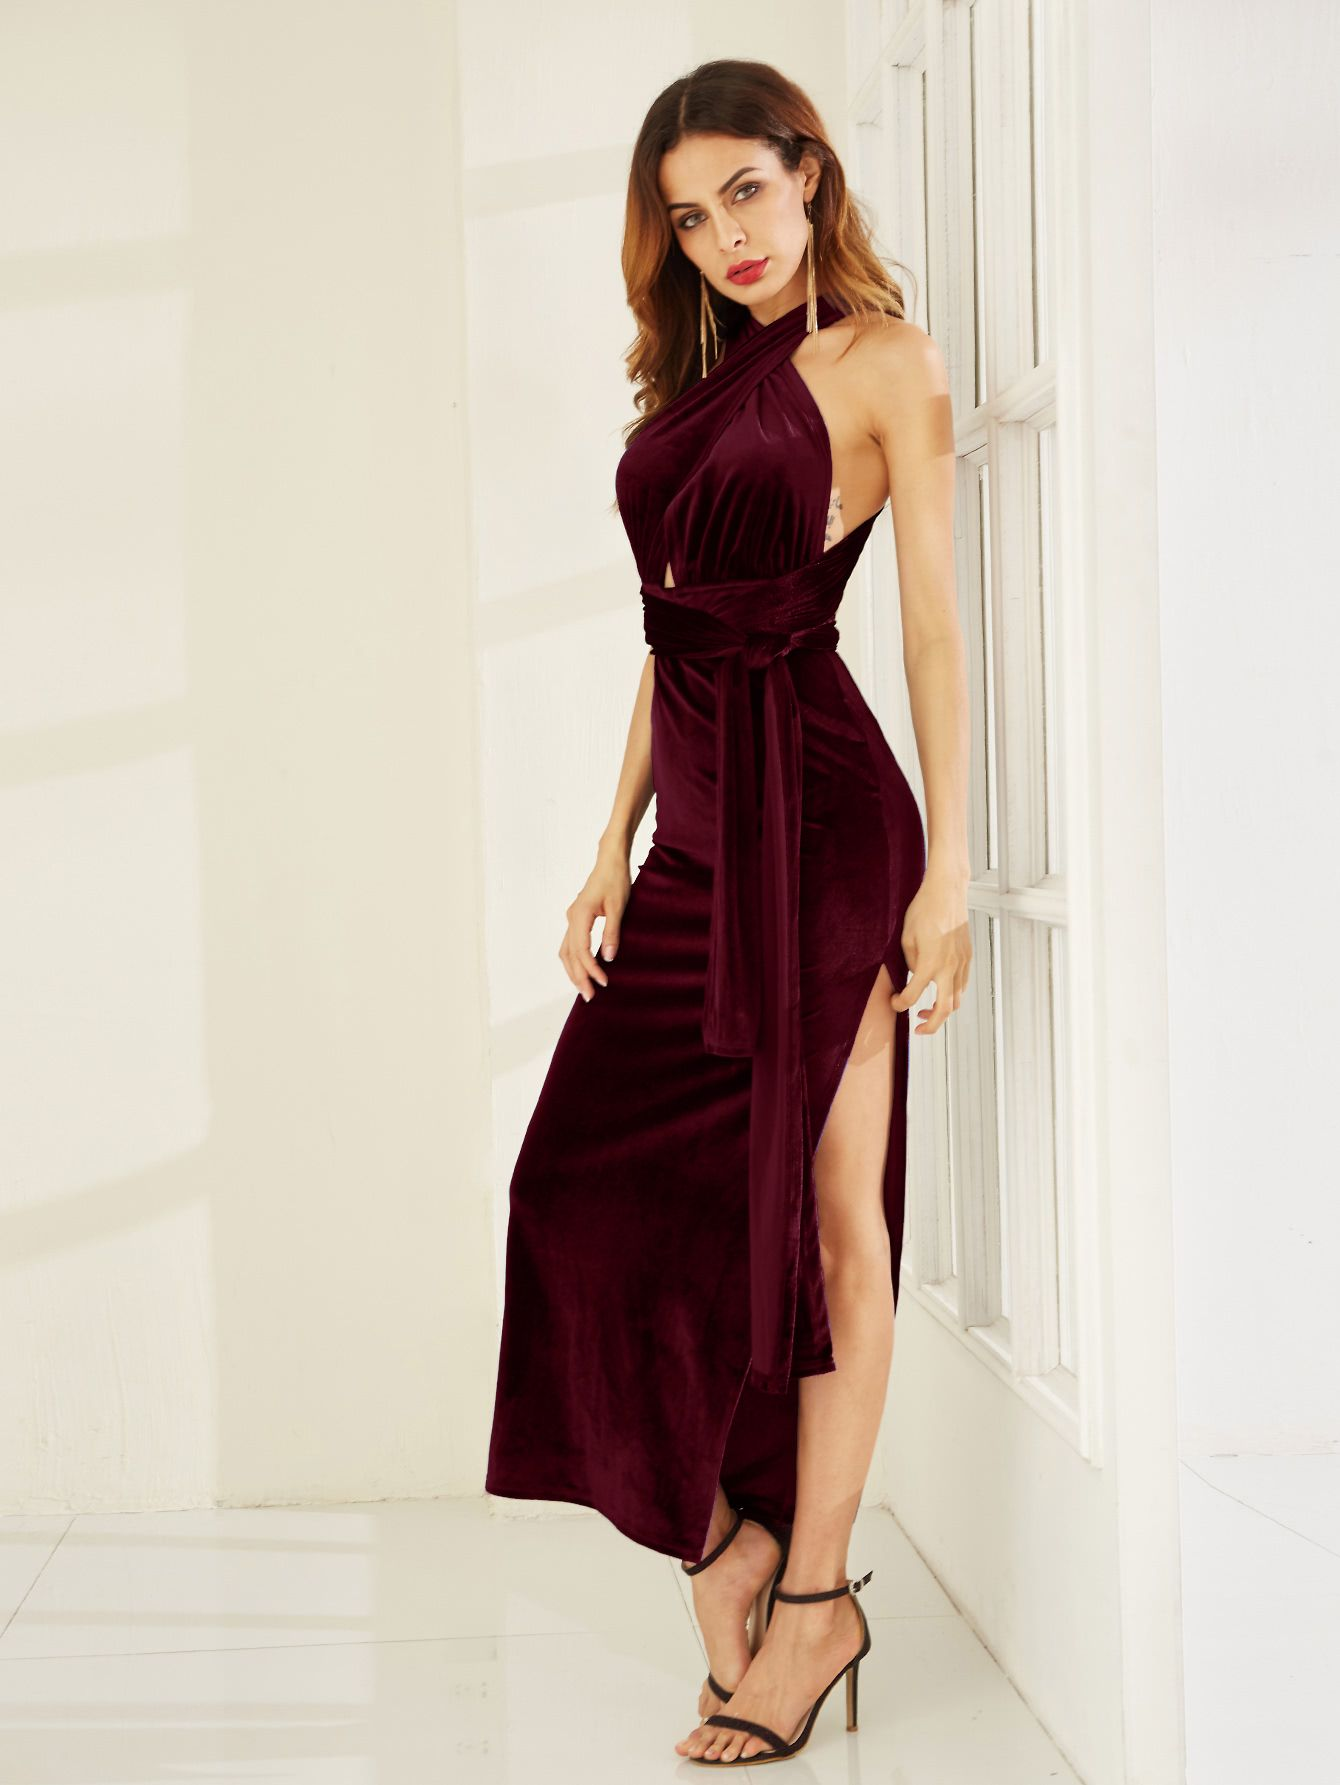 b62d46071 Shop High Slit Velvet Convertible Dress online. SheIn offers High Slit  Velvet Convertible Dress & more to fit your fashionable needs.